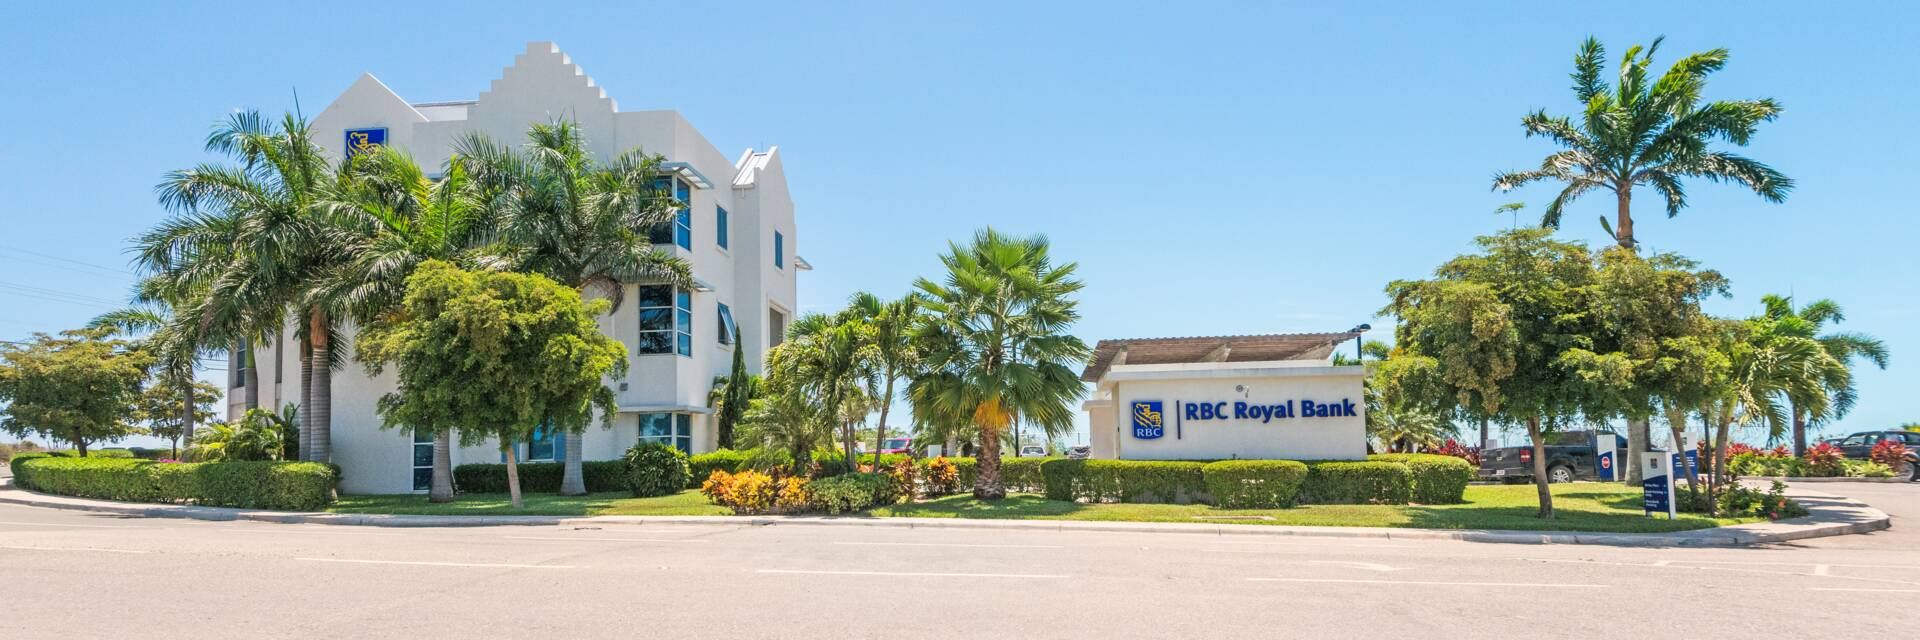 Home Bank Of Canada Royal Bank Of Canada Visit Turks And Caicos Islands